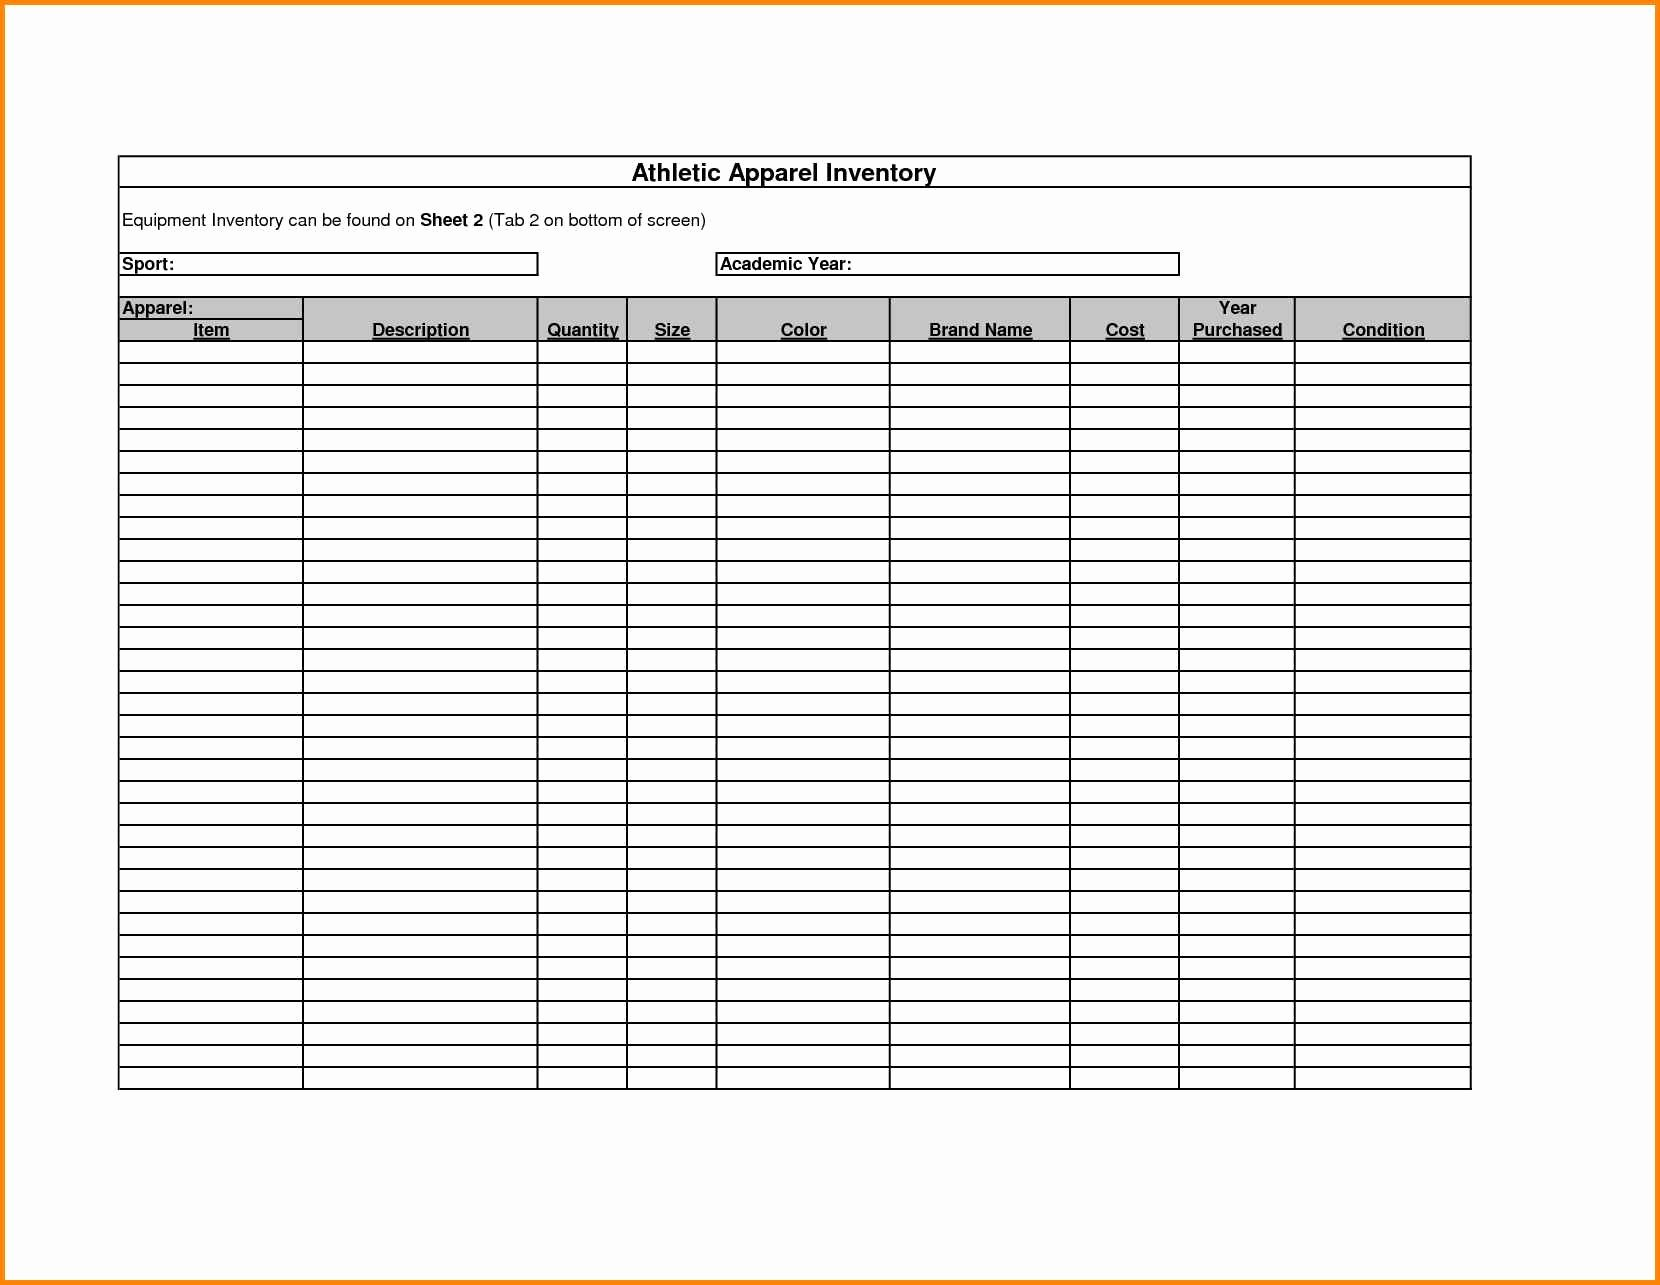 Check Out Sheet Template Luxury Inventory Sign Out Sheetlate Checklist Sample List for